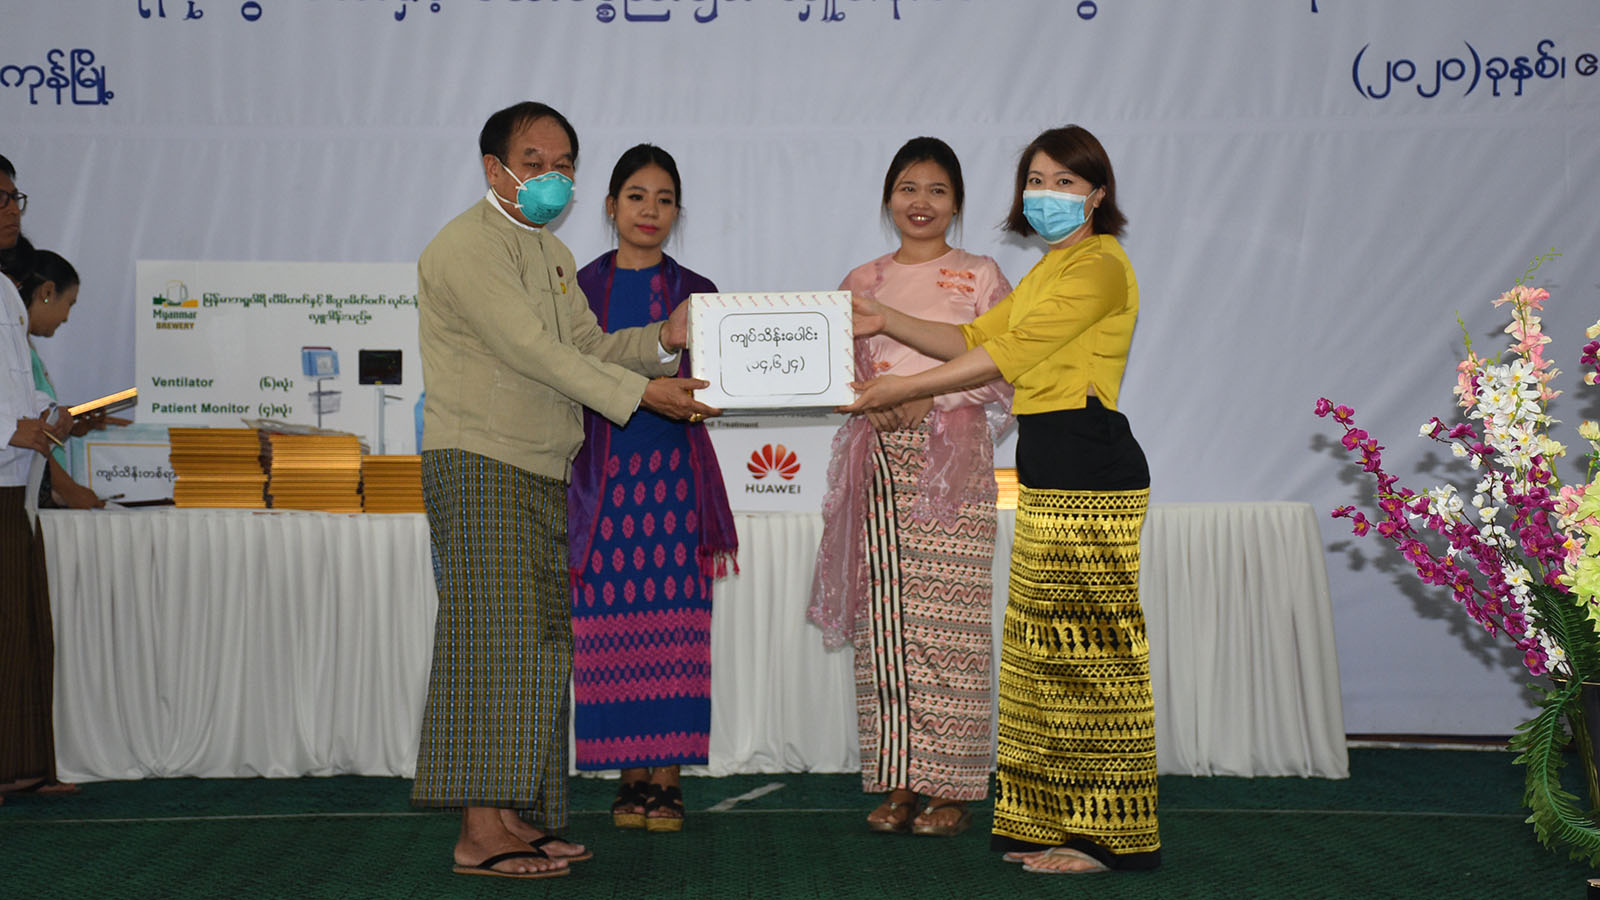 Union Minister Dr Myint Htwe receives the donations of cash and medical equipment for combating COVID-19 in Yangon yesterday. Photo: MNA